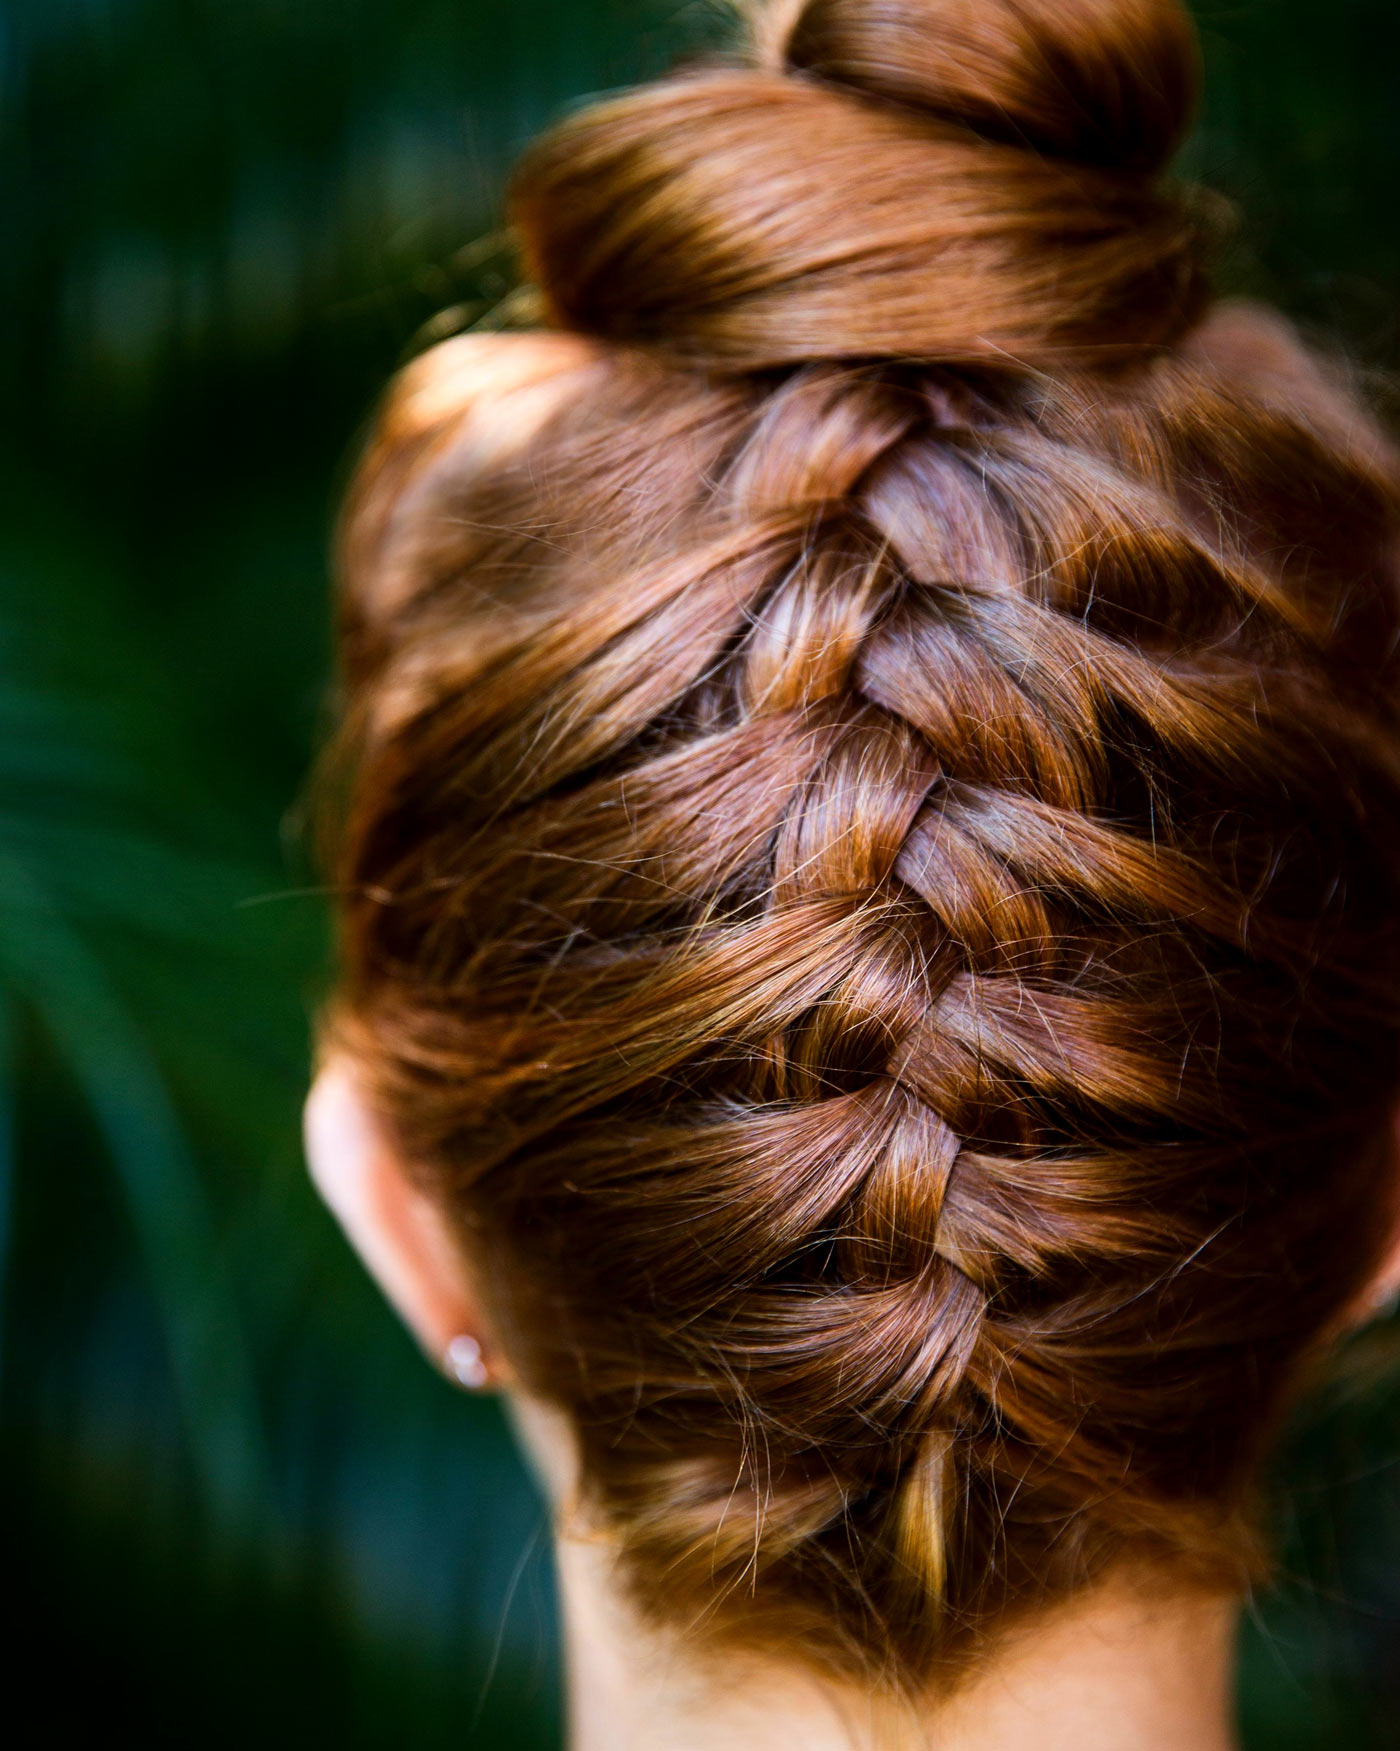 red head, braided hair